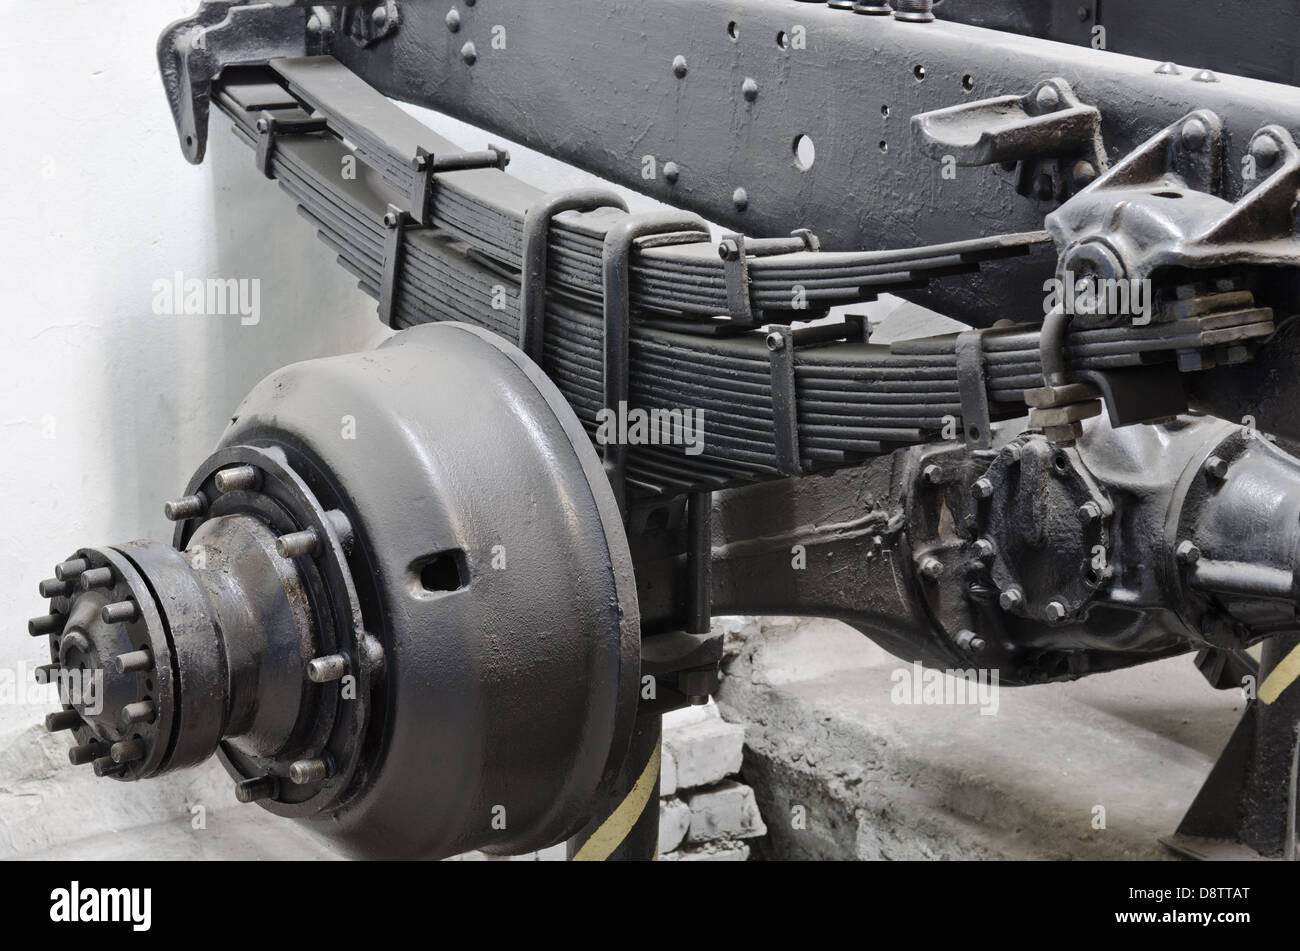 Car Suspension Broken Stock Photos Amp Car Suspension Broken